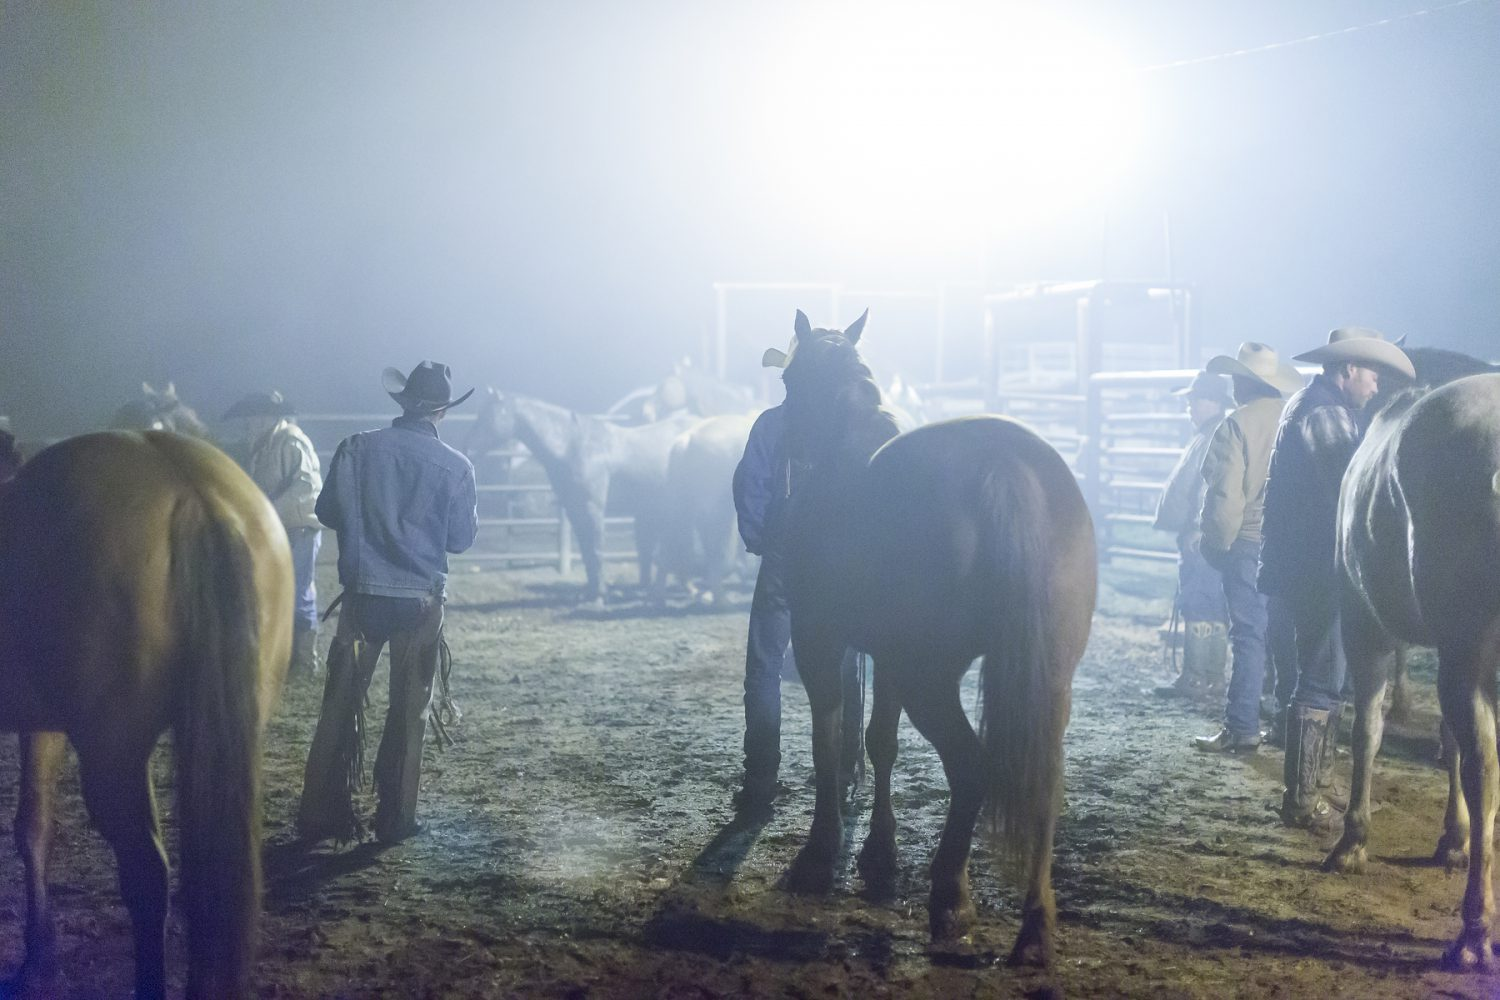 New never before seen photographs of the Waggoner Ranch